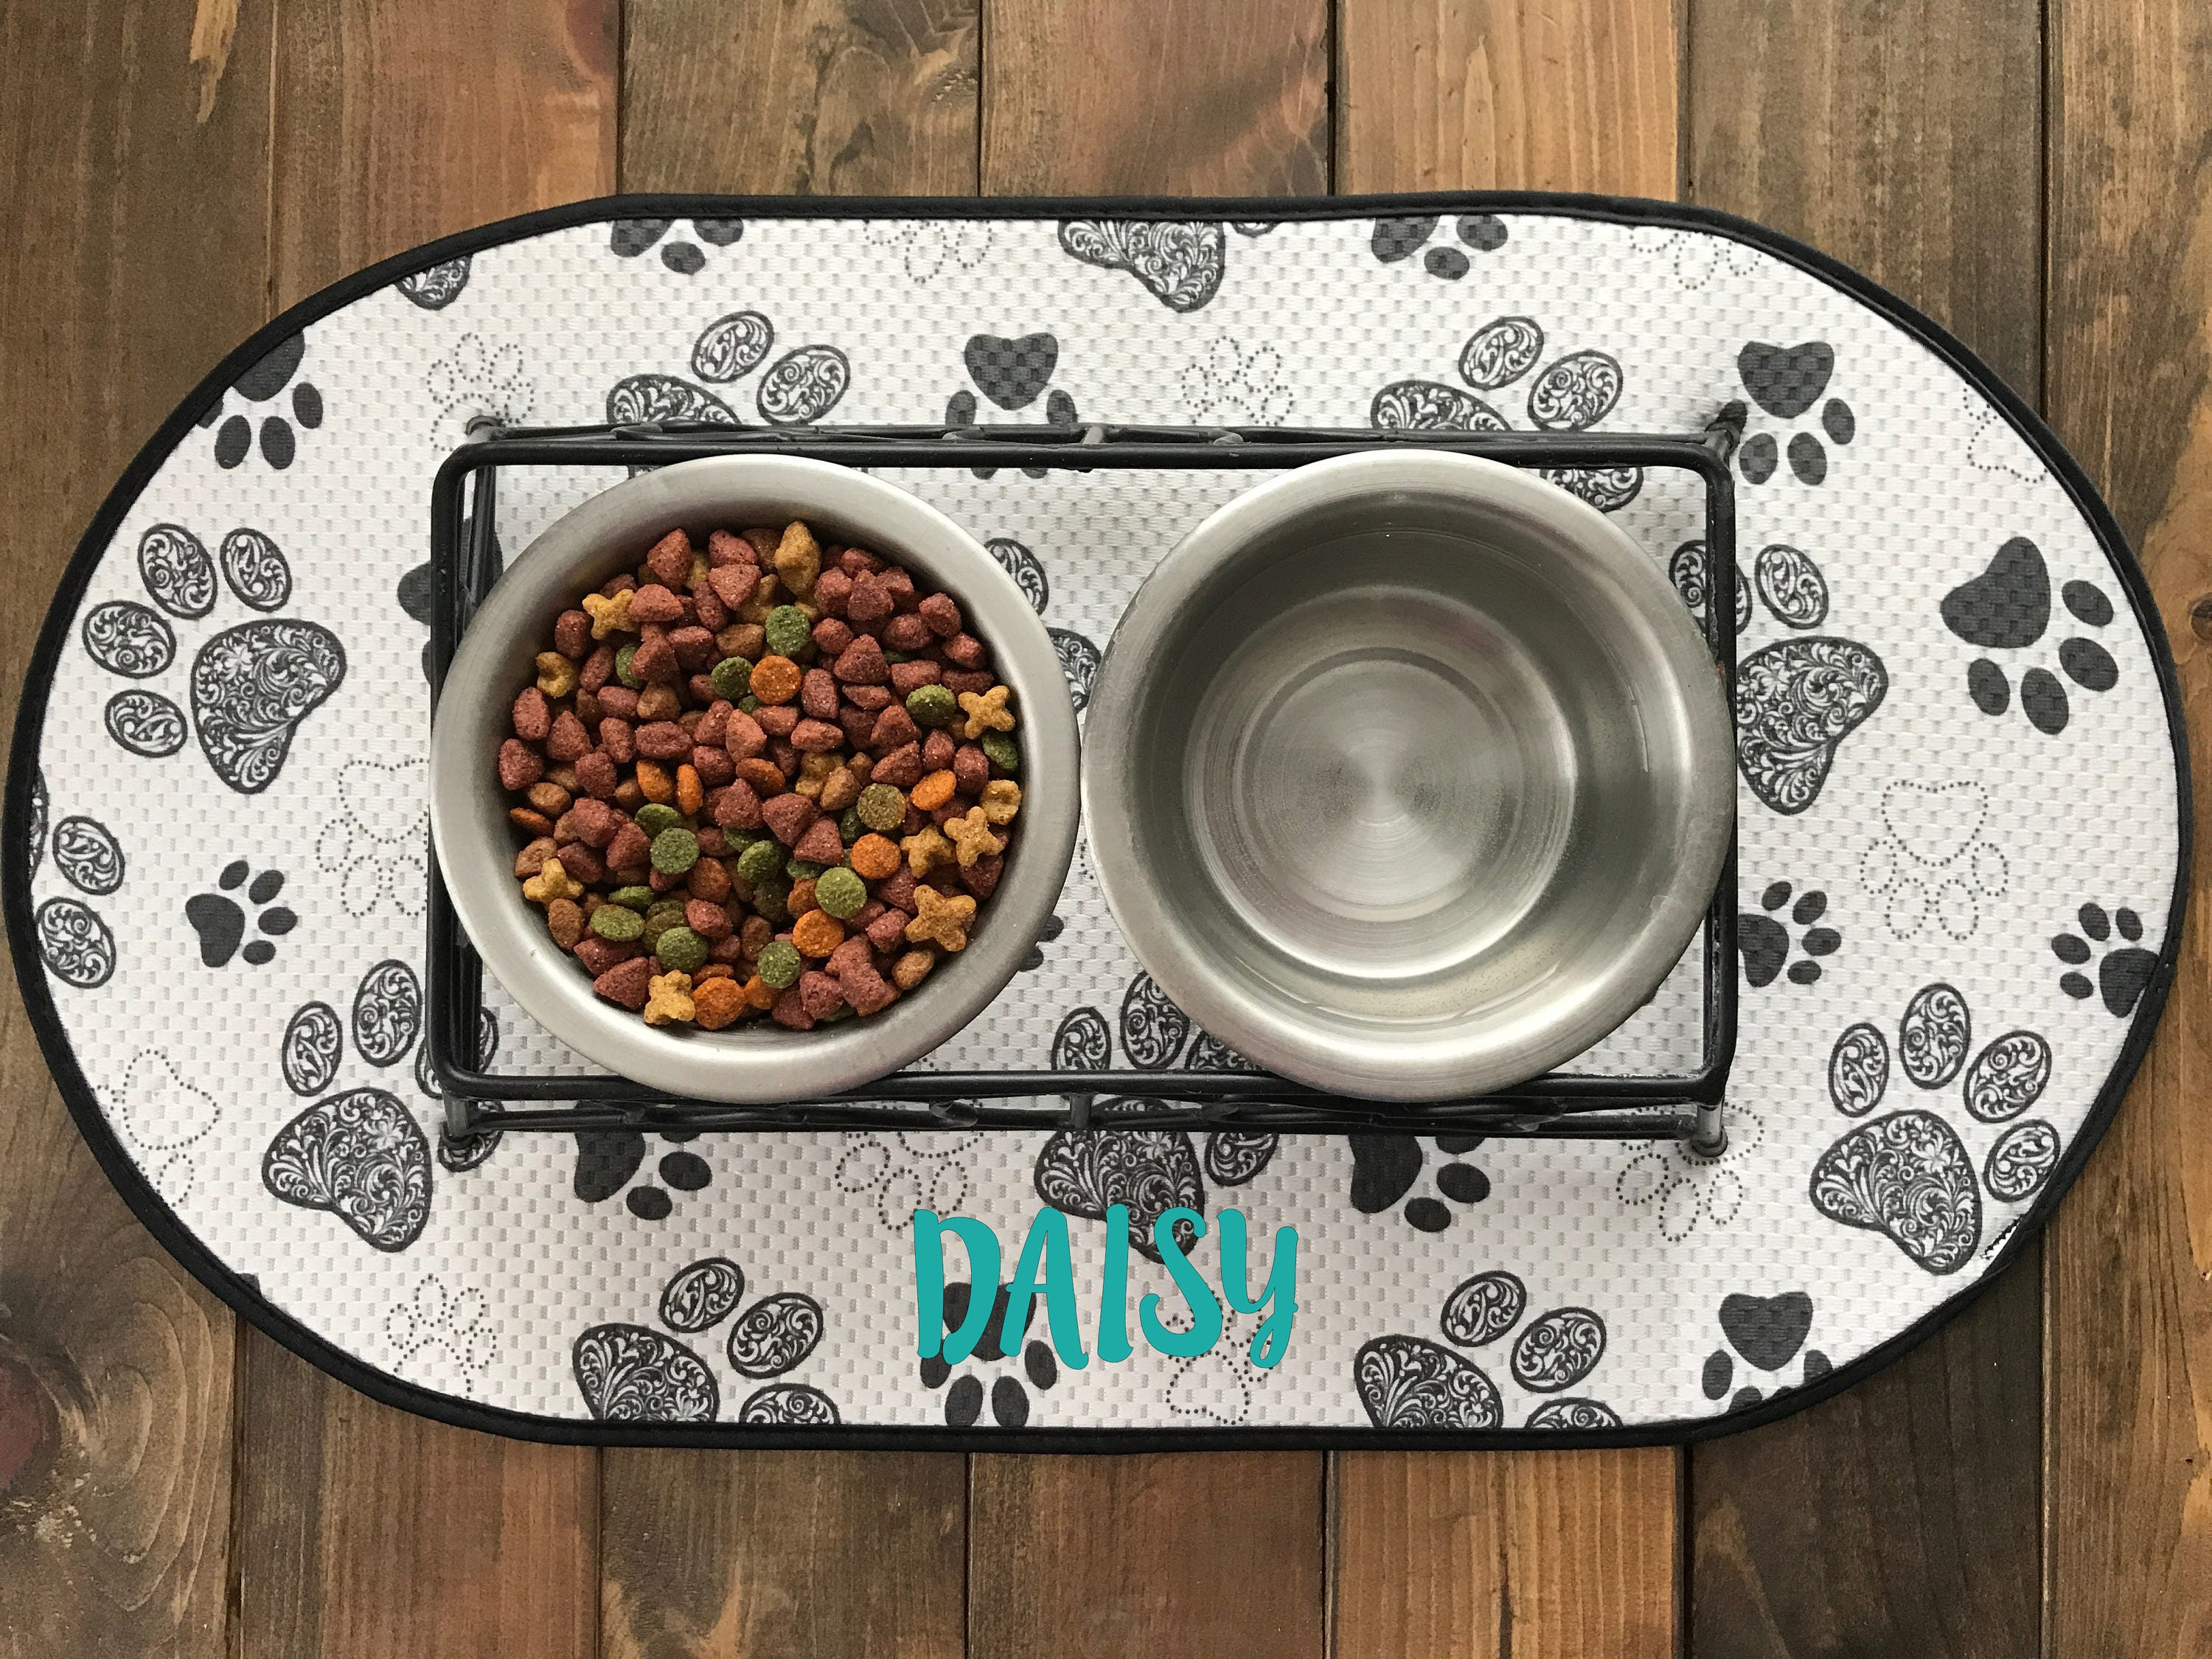 shaped non and product paw free over overstock food slip on orders mat cats supplies for litter pet bffa shipping dogs